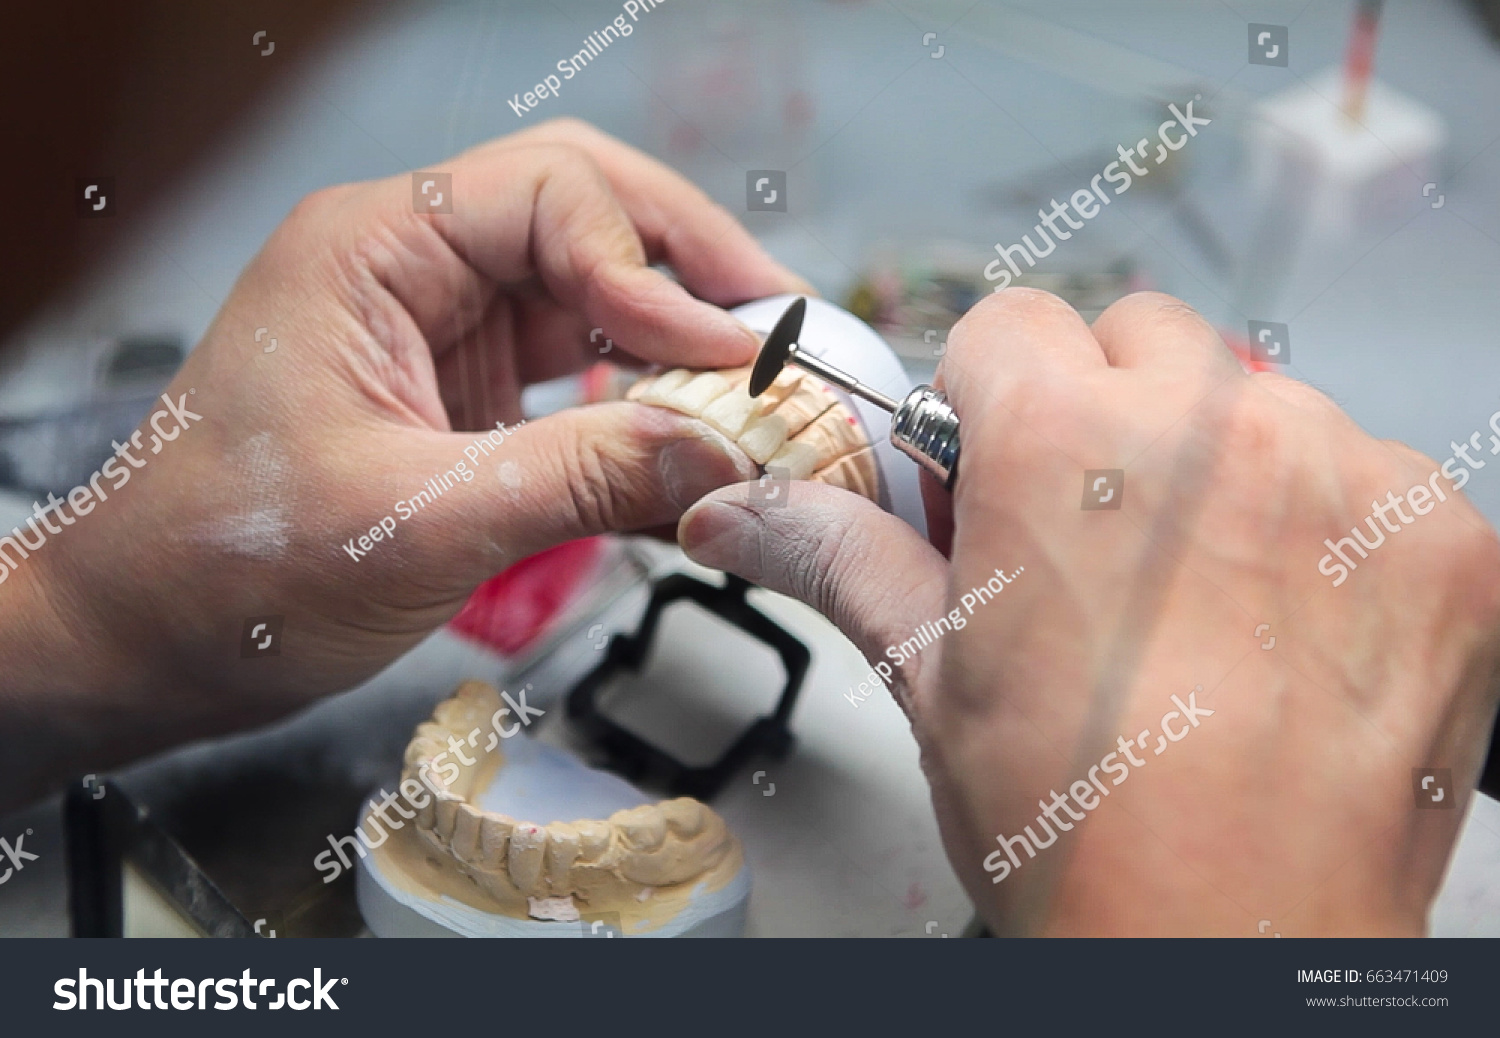 Mans Hands Working On A Tooth Implant